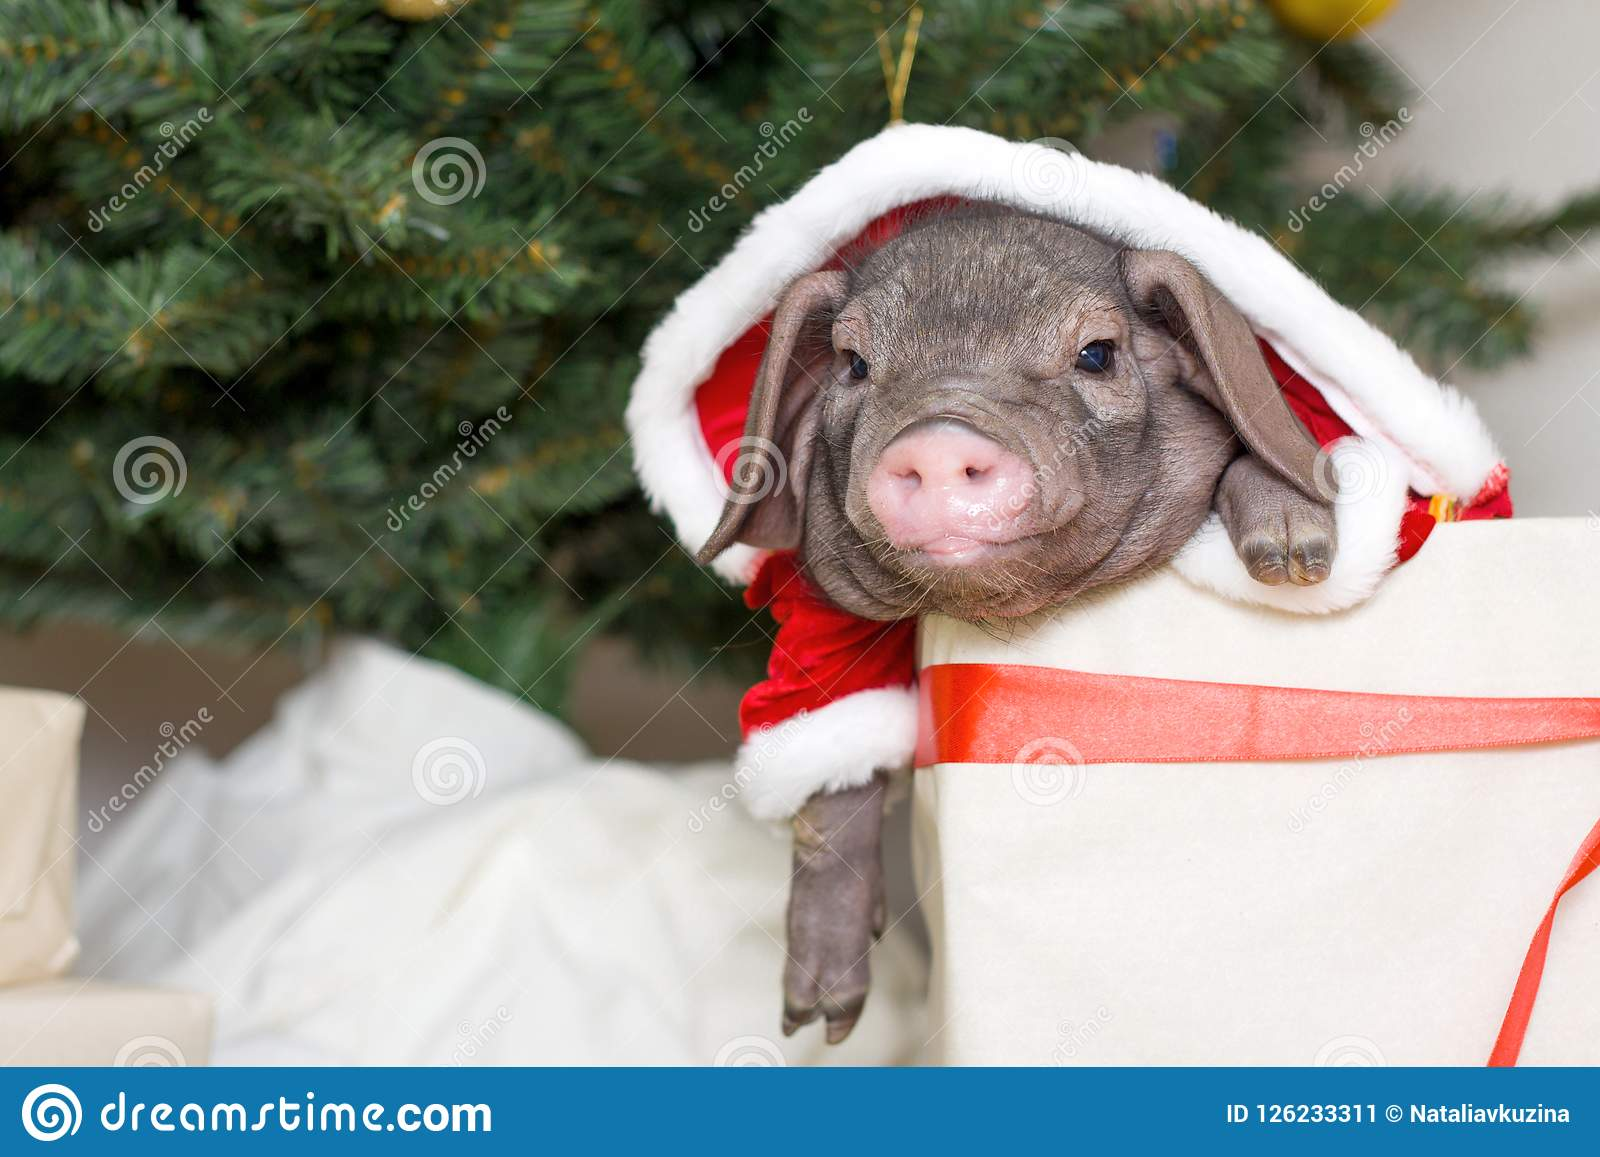 download christmas and new year card with cute newborn santa pig in gift present box